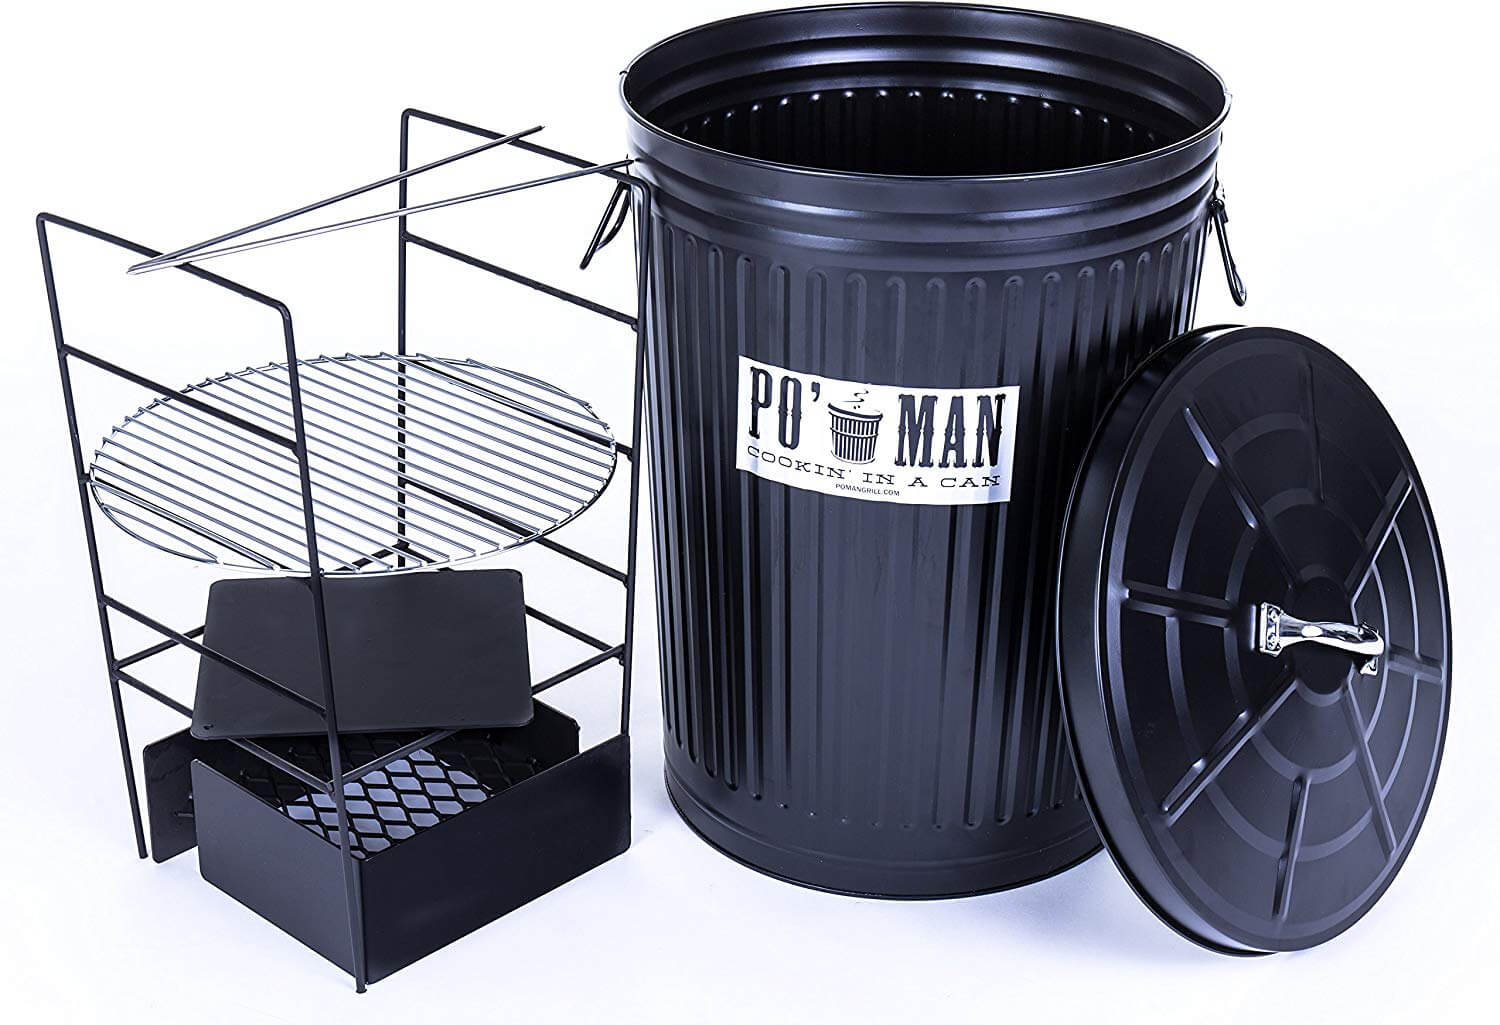 The Original Po Man Charcoal Grill